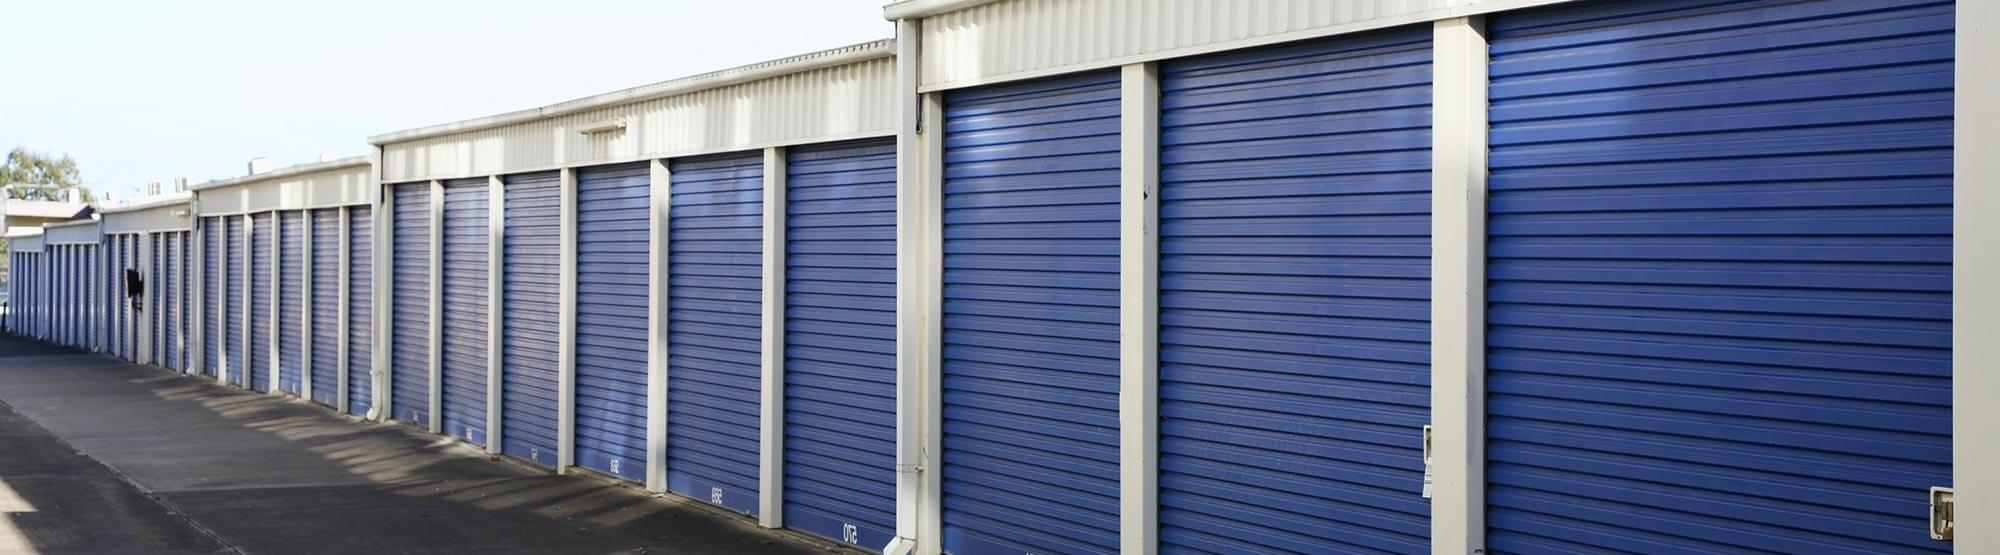 Rows of storage units in Cypress, TX